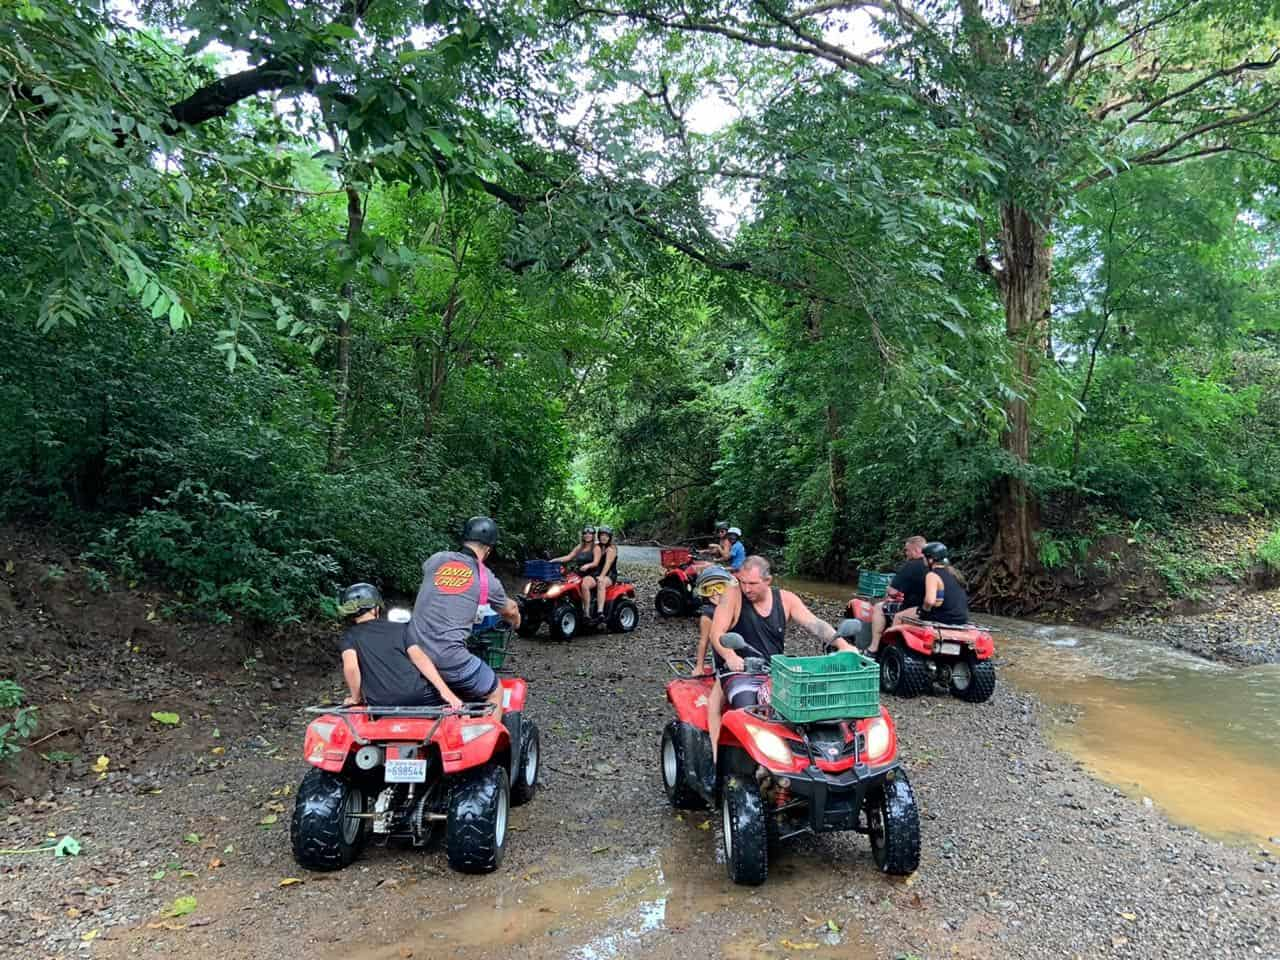 ATVs by the river